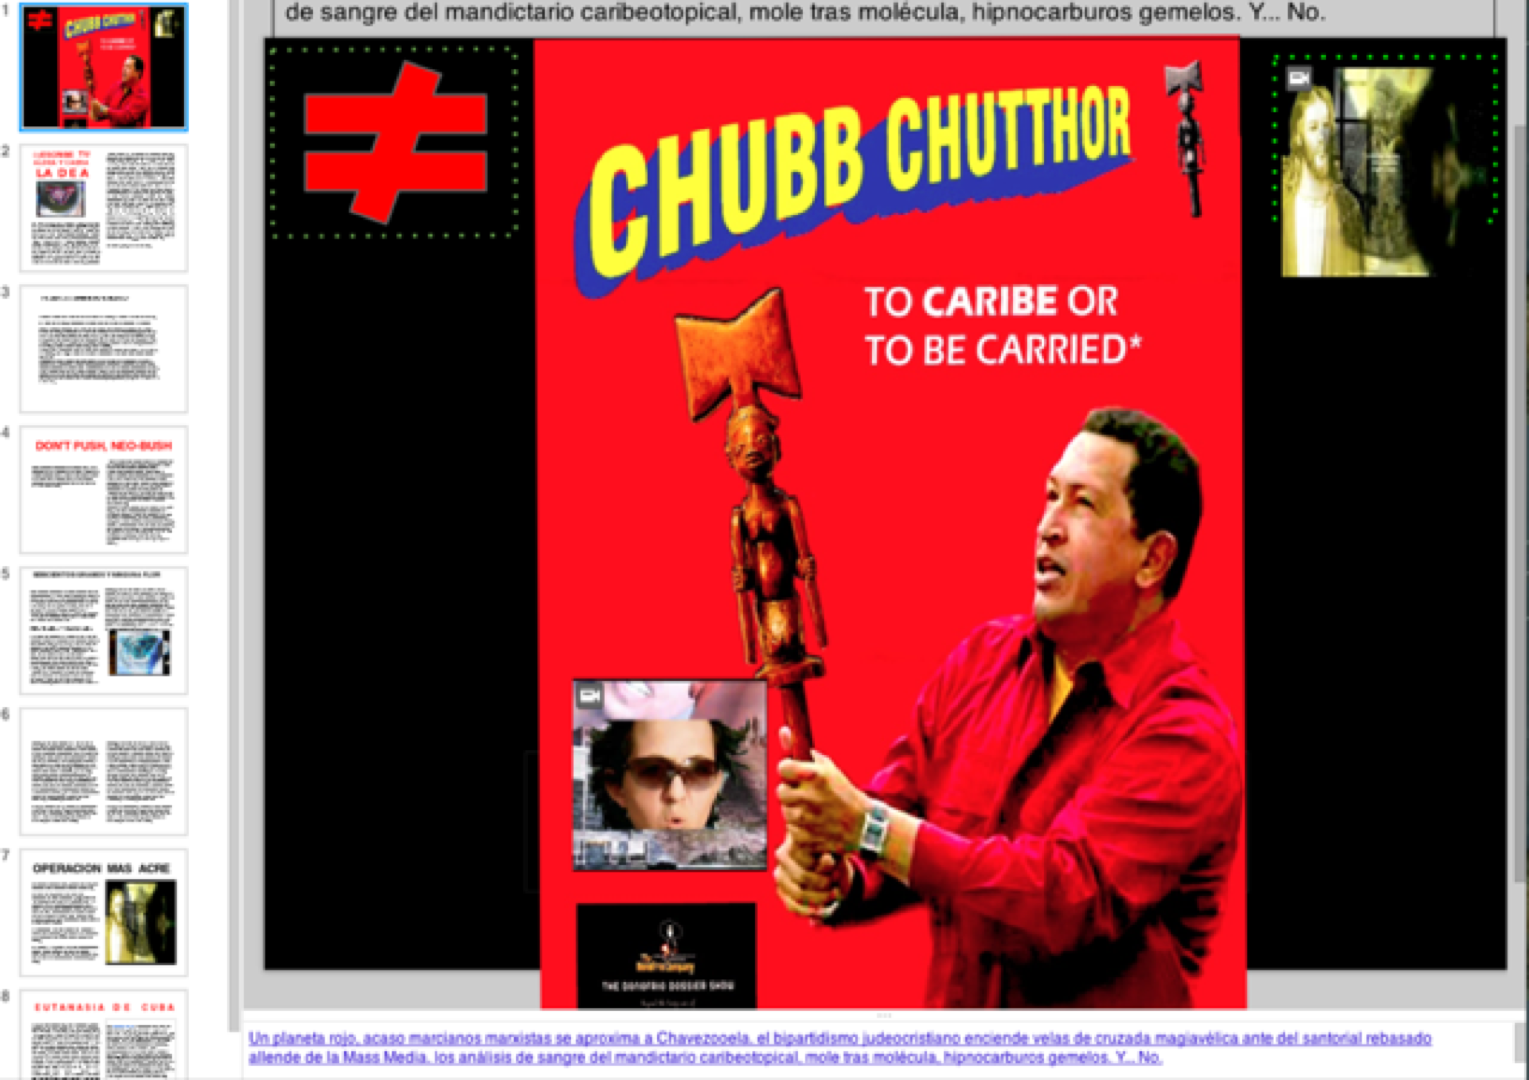 CHUBB CHUTTHOR - TO CARIBE OR TO BE CARRIED